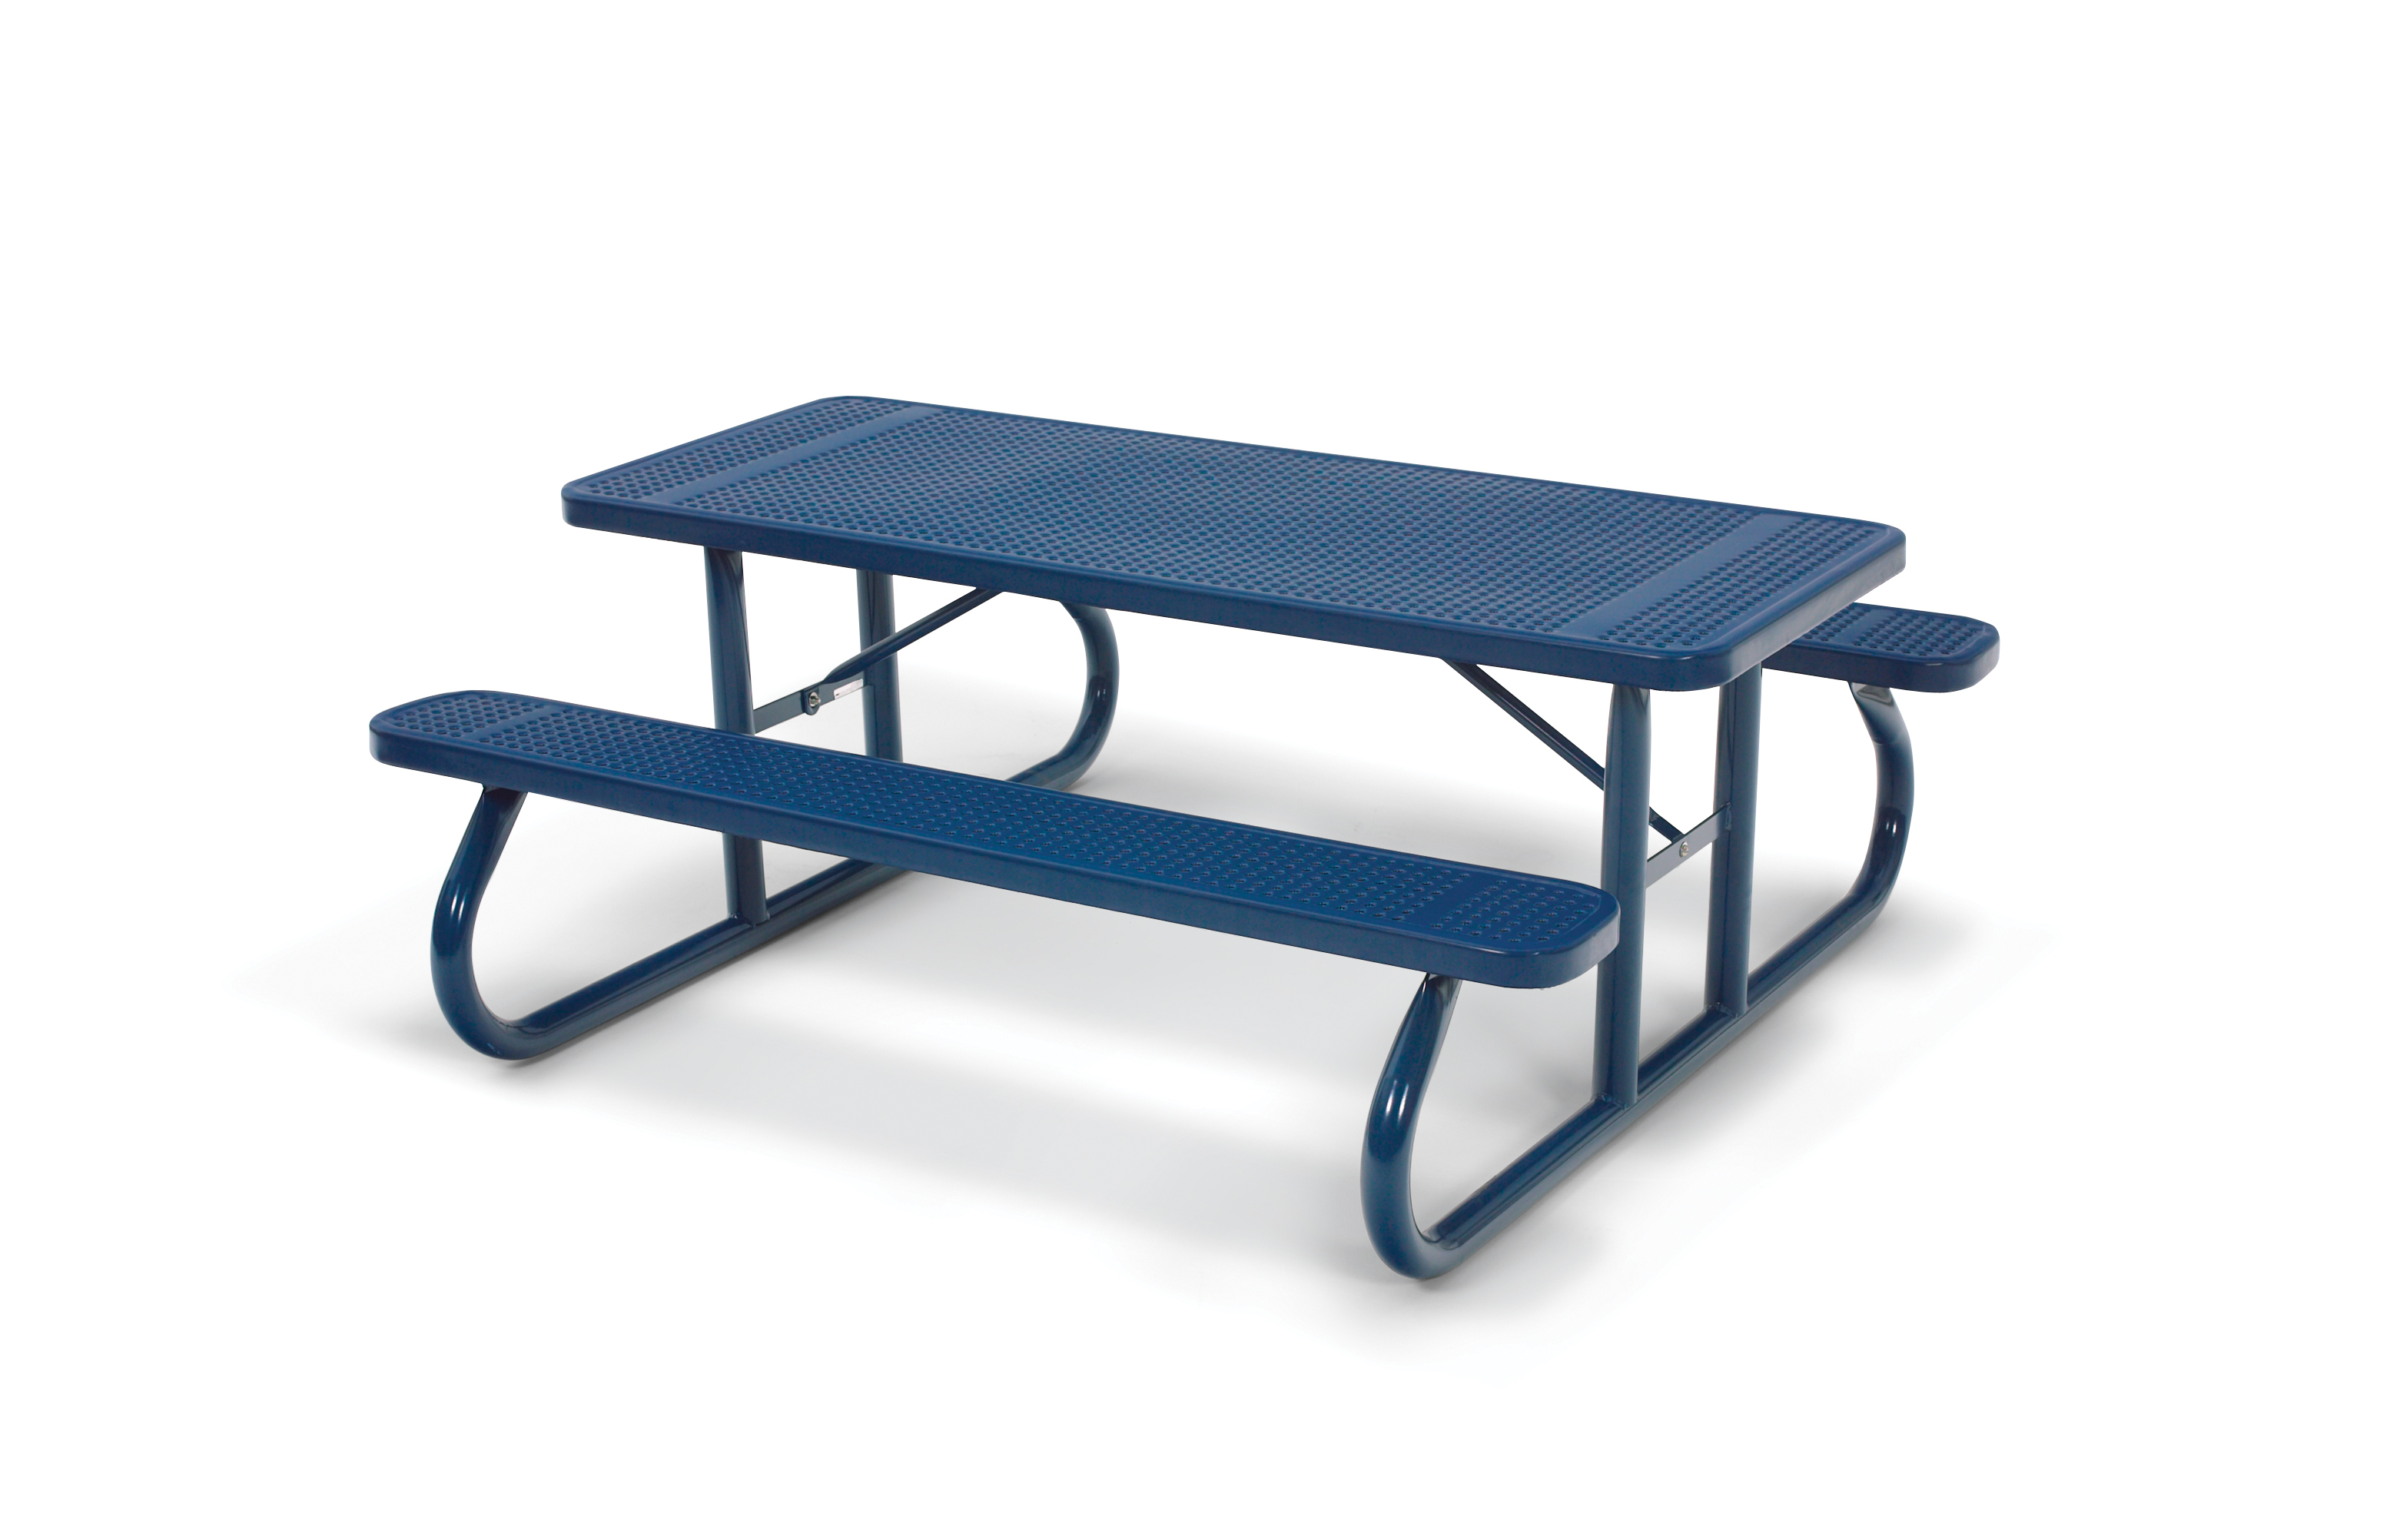 Signature Collection 6u0027 Rectangular Picnic Table With Light Duty Frame  (Portable)   Indoff Commercial Site Furnishings Discount Superstore